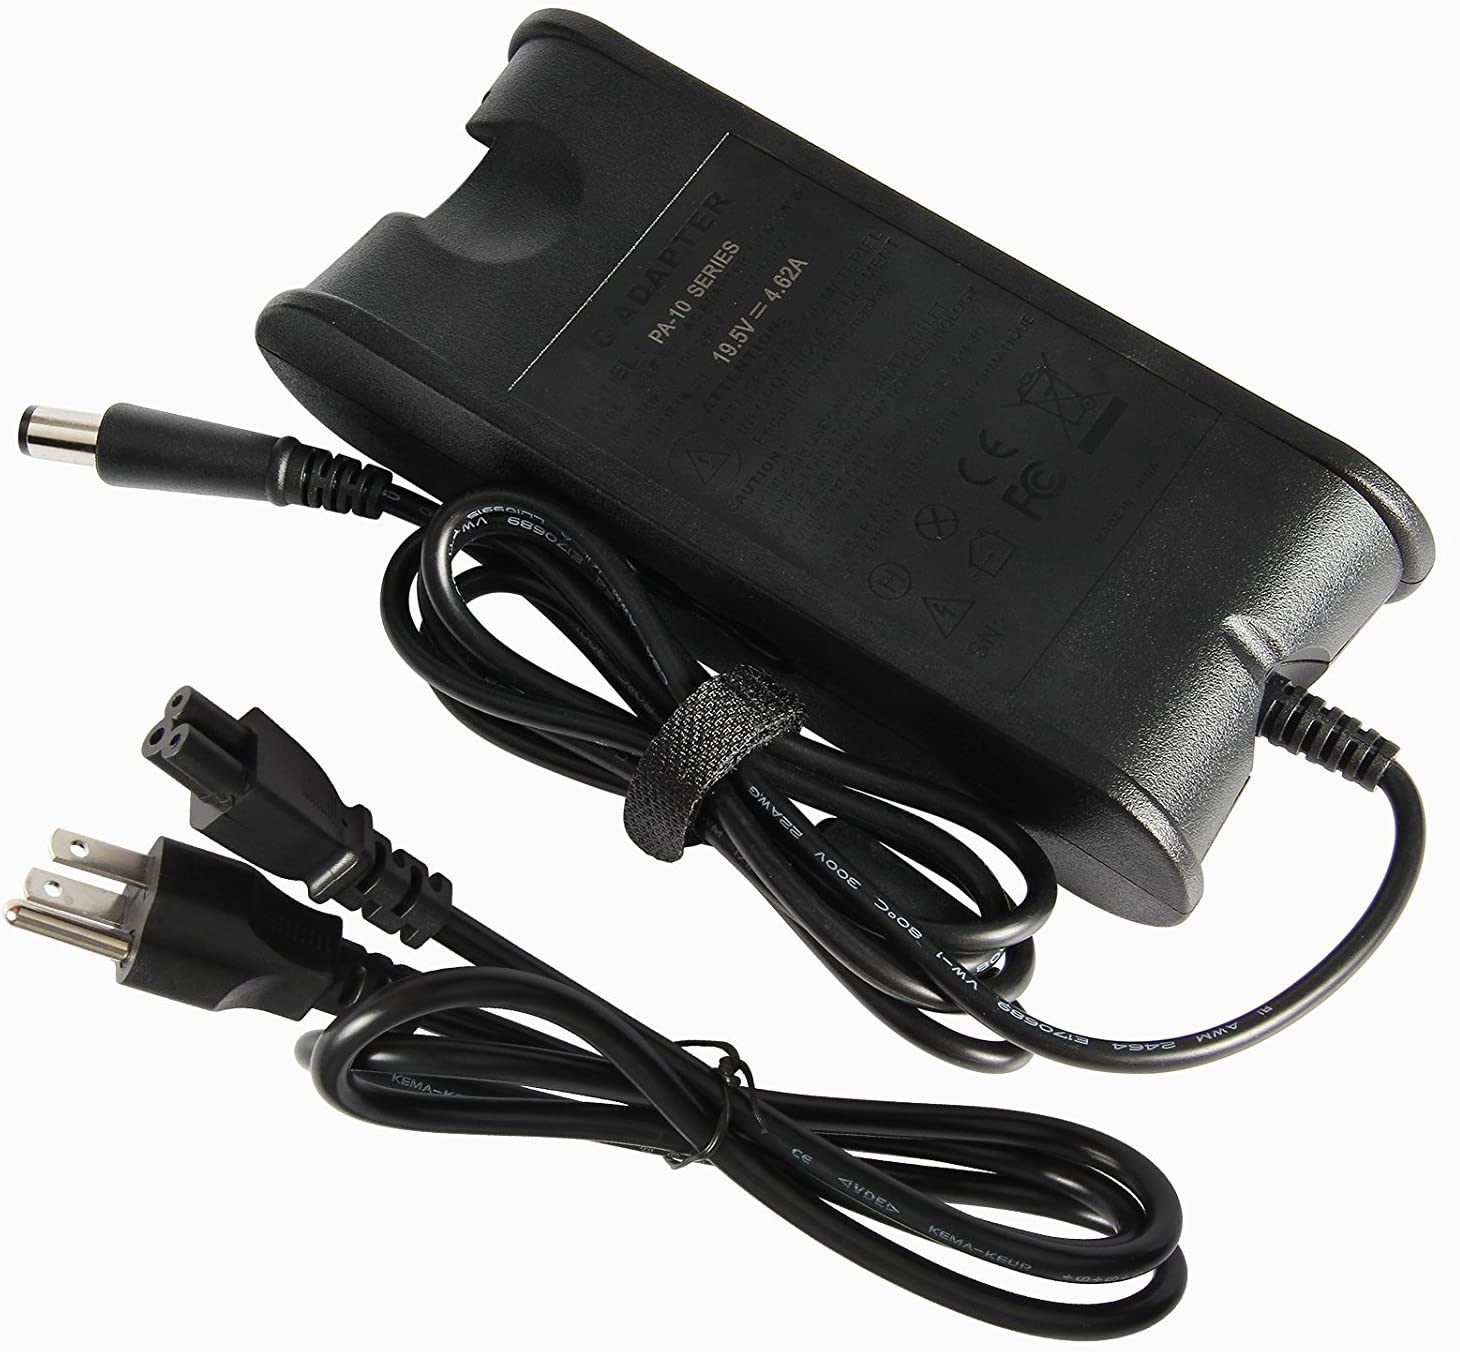 19.5V 4.62A 90W AC Adapter Charger Power Supply Cord for Dell PA10 P28F P39F P22T P10F P40F P72G P40G P63G P60F P62G P61G P28S P22S P15G P35G P37G P45G P44G P41F P49G P47G P46G P73G P79G P78 7.4x5.0mm